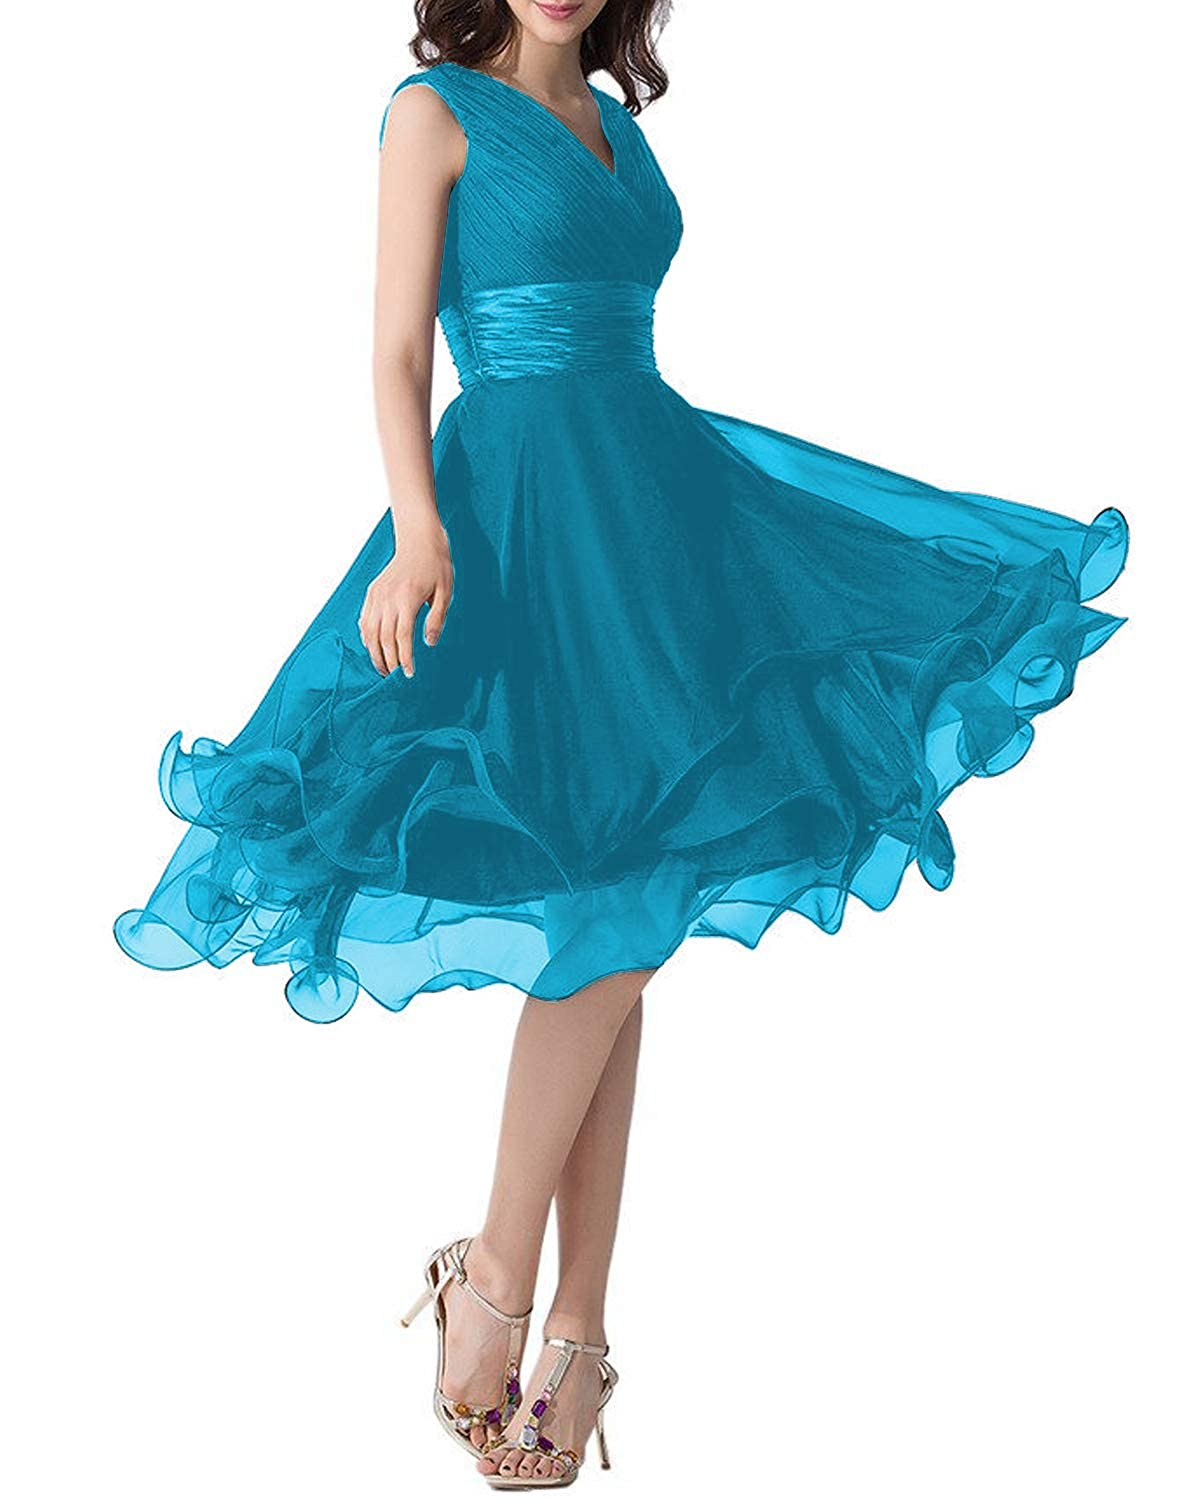 bluee Monalia Women's Tulle Tea Length Prom Dresses Formal Evening Gown P152